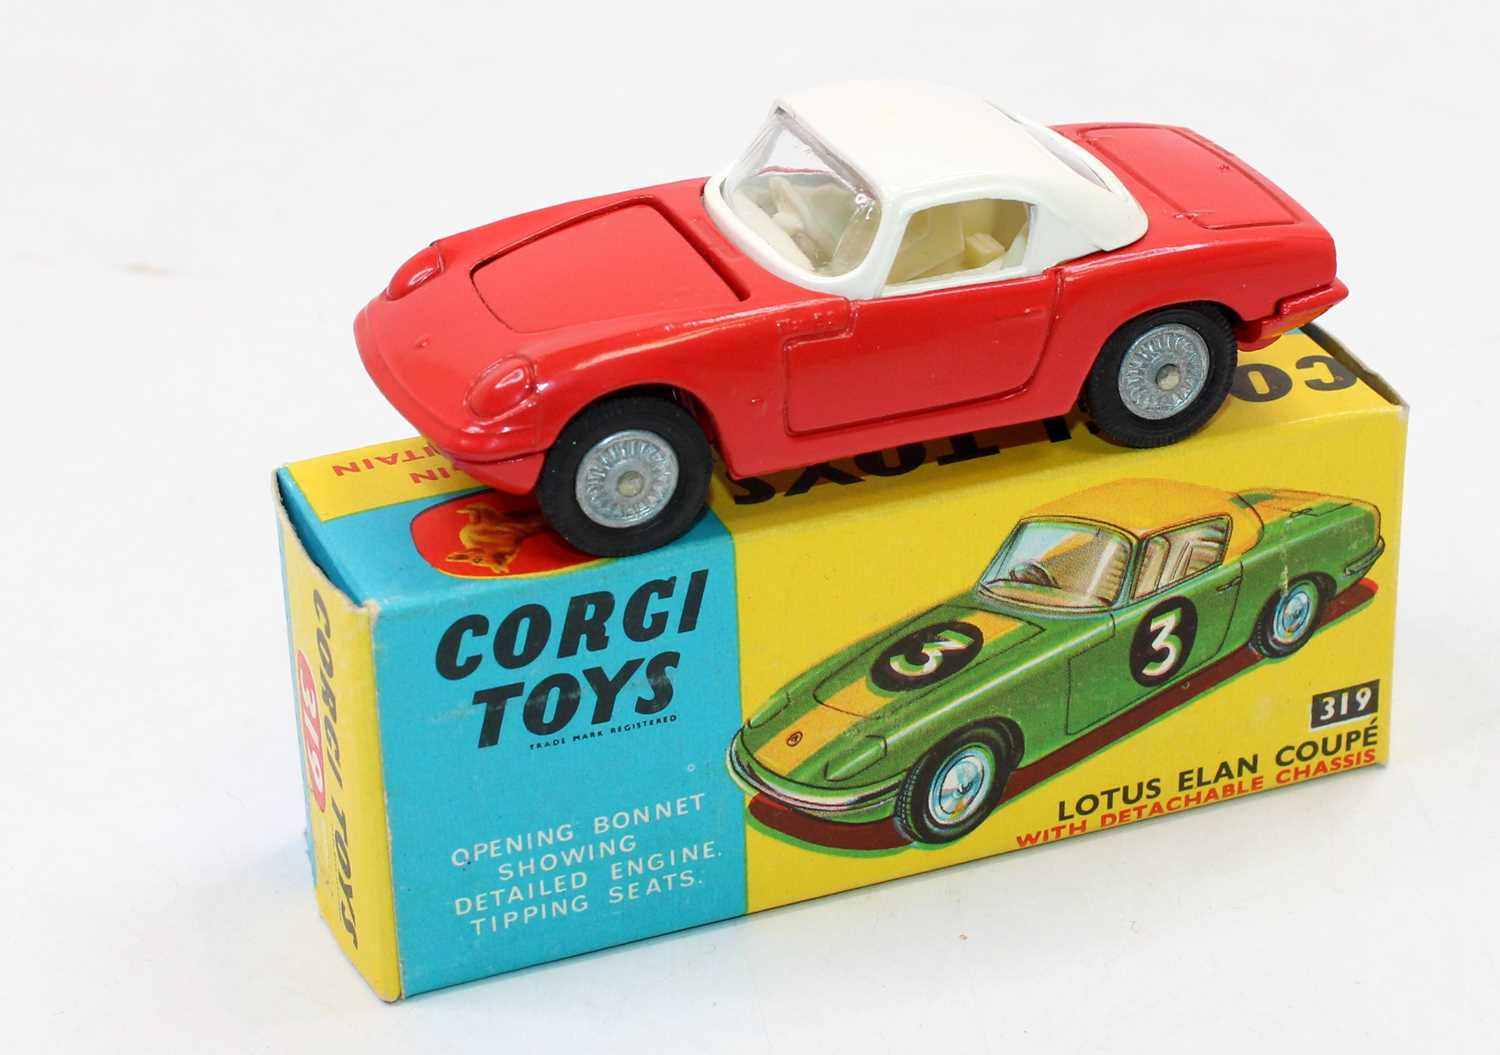 Corgi Toys No. 319 Lotus Elan Coupe comprising red body with white roof and cream interior, with